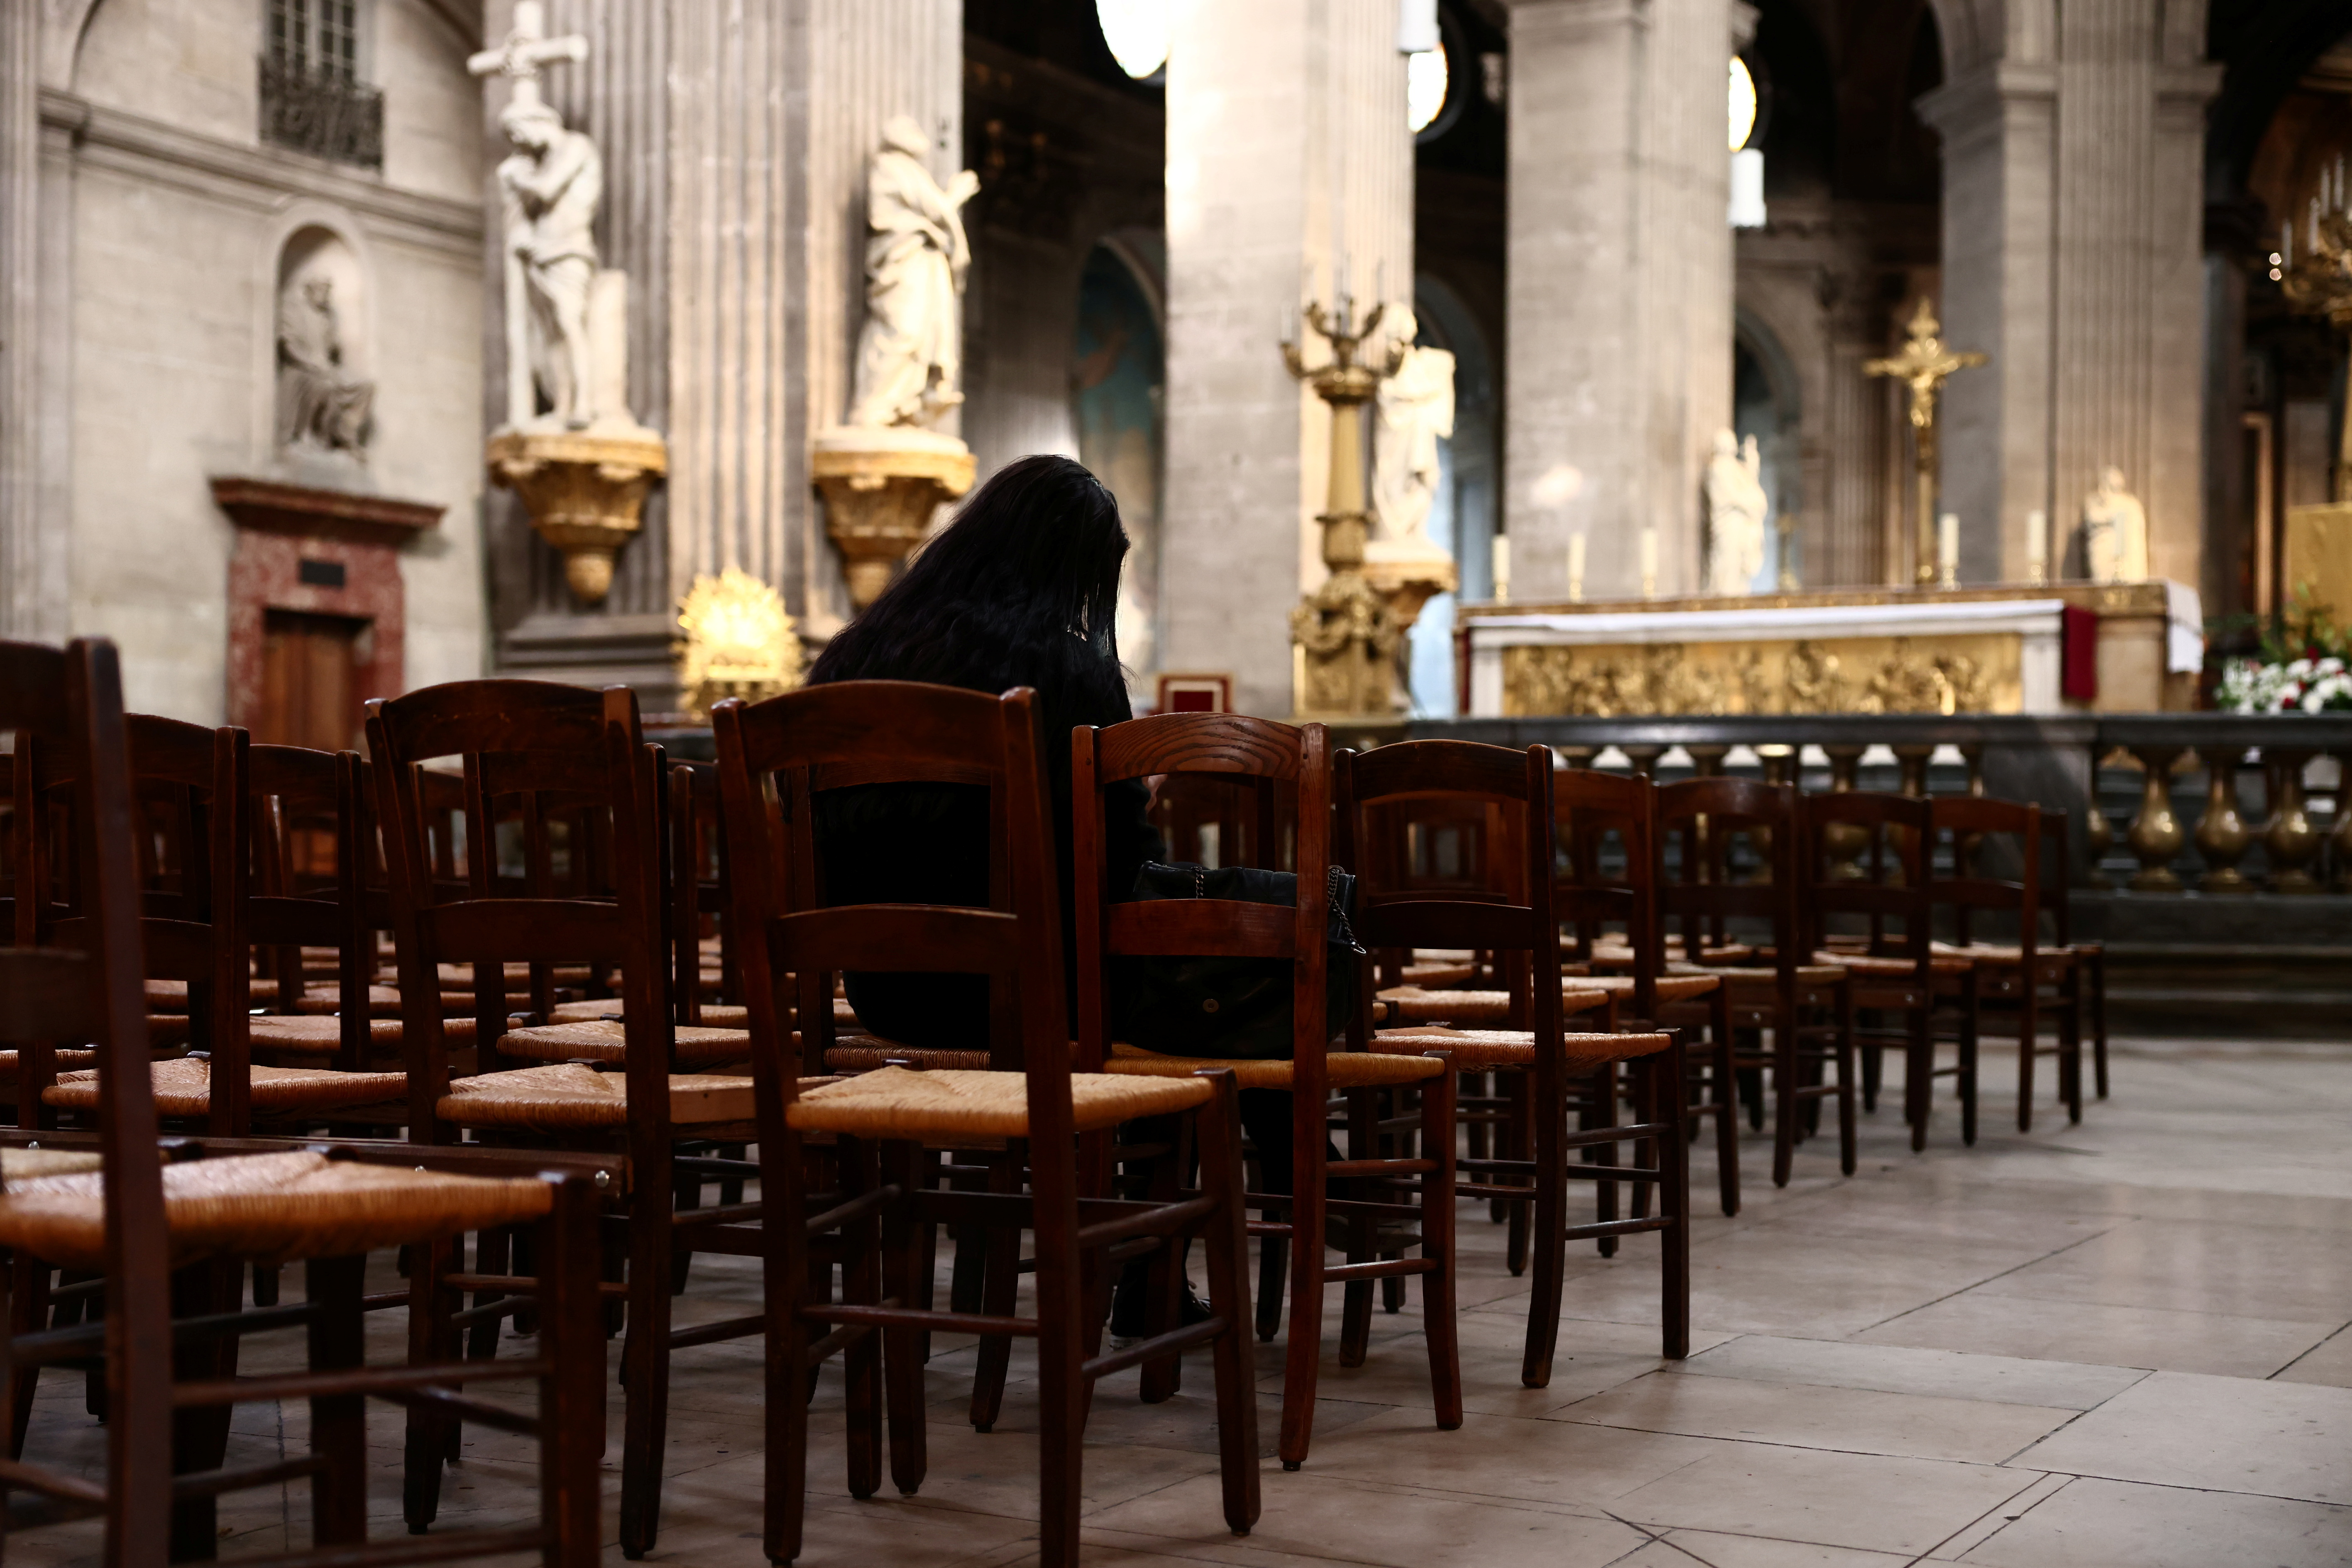 A woman prays inside the Saint-Sulpice church in Paris, France, October 4, 2021. Picture taken October 4, 2021. REUTERS/Sarah Meyssonnier